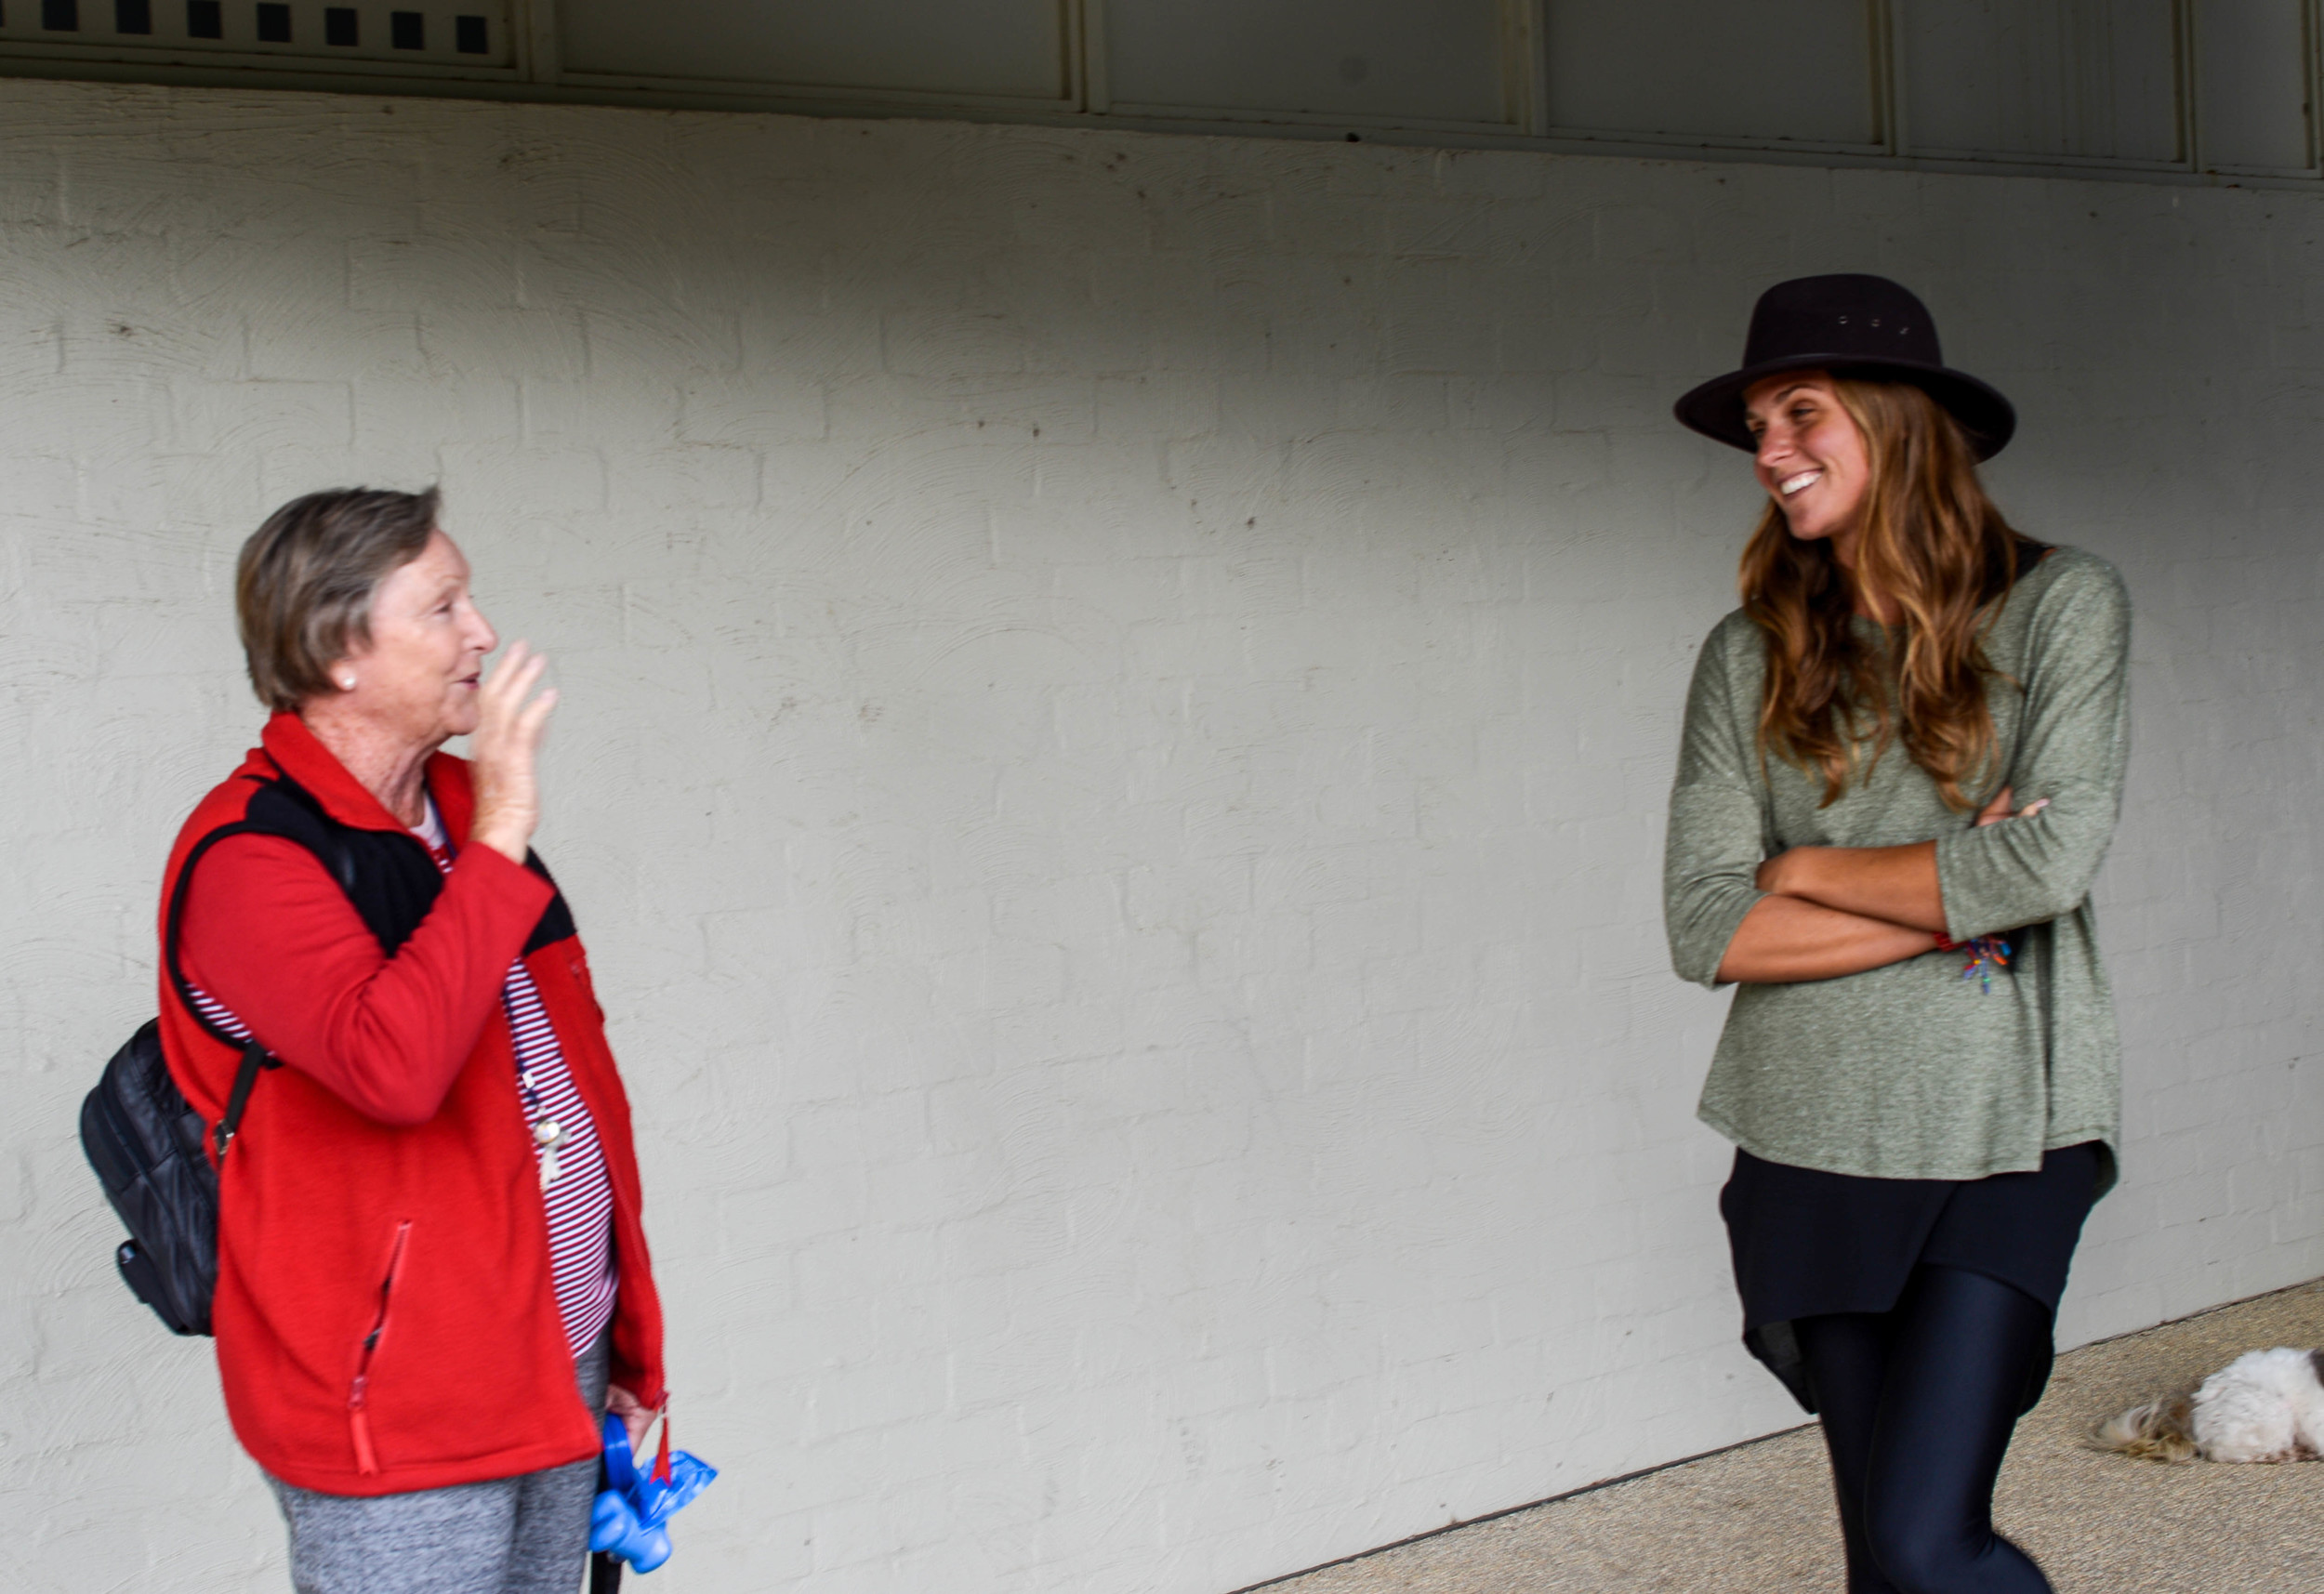 Jess chatting with Bev about her dream to sky dive.